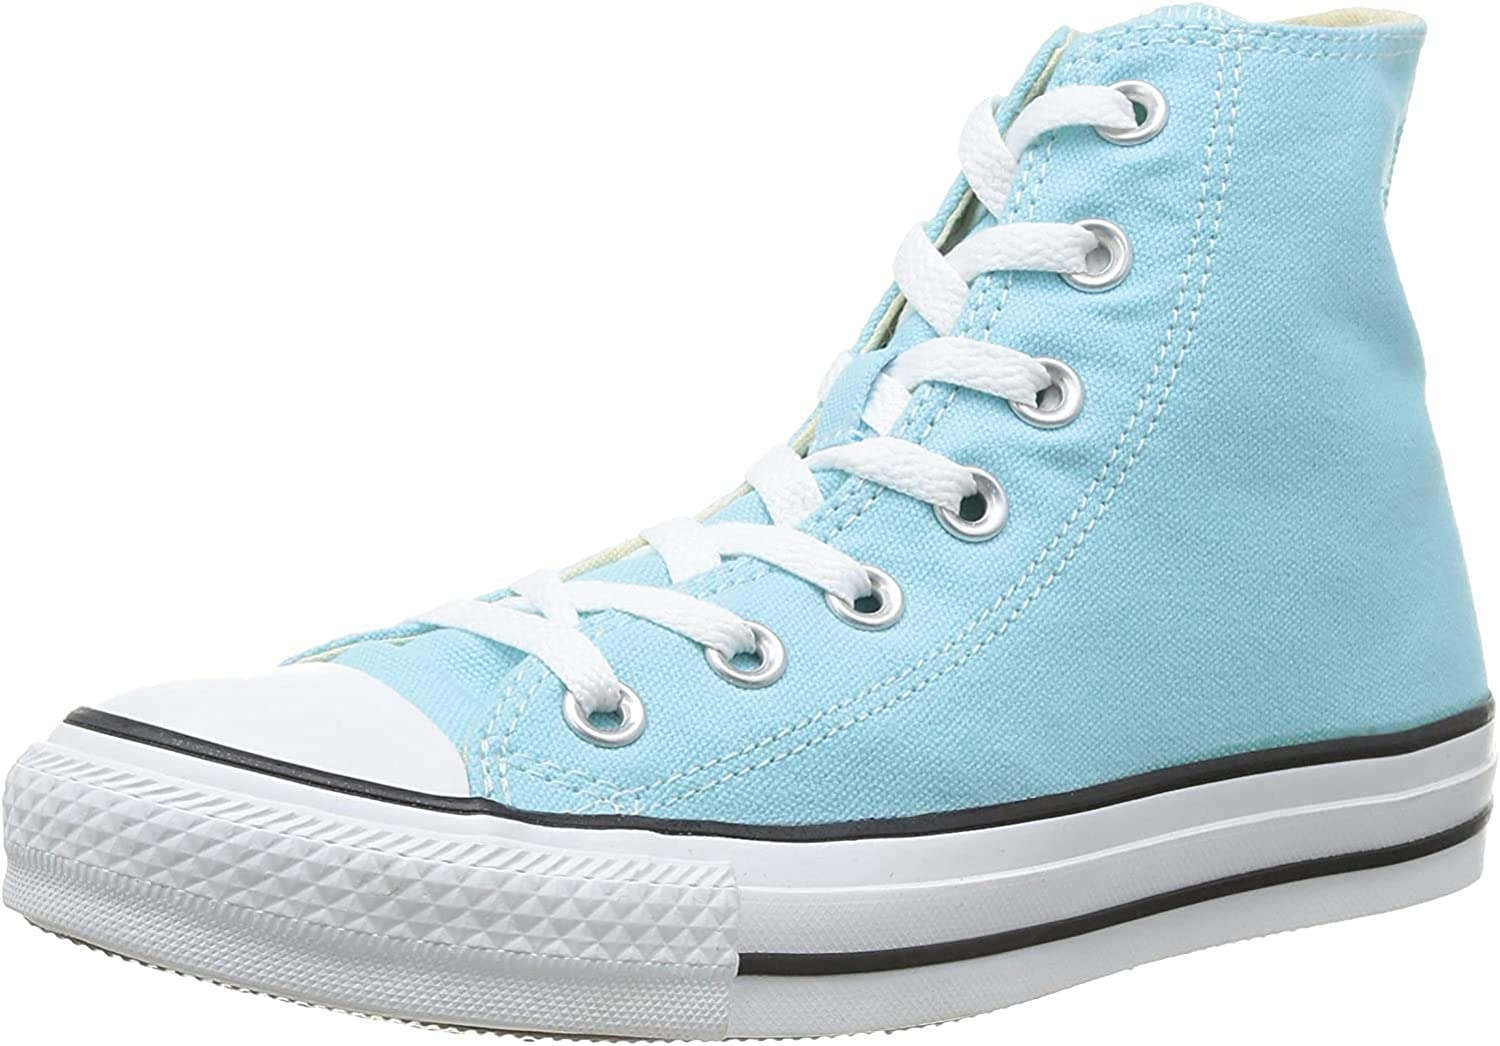 Wholesale Converse Chuck Taylor All Star Core Hi Turquoise qKgZts